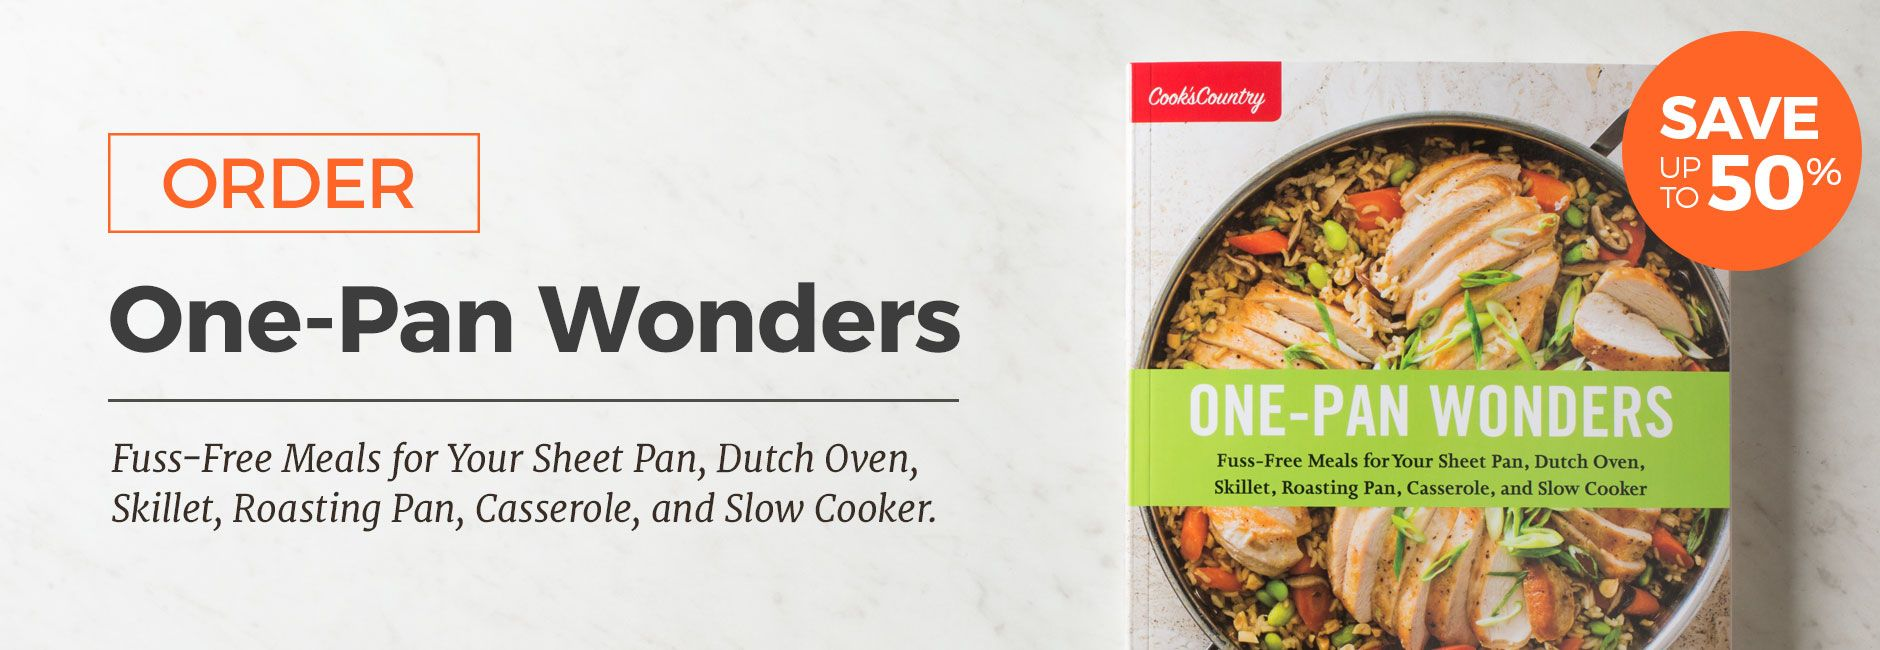 The One Pan Wonders Cookbook Order Form Roasting Pan